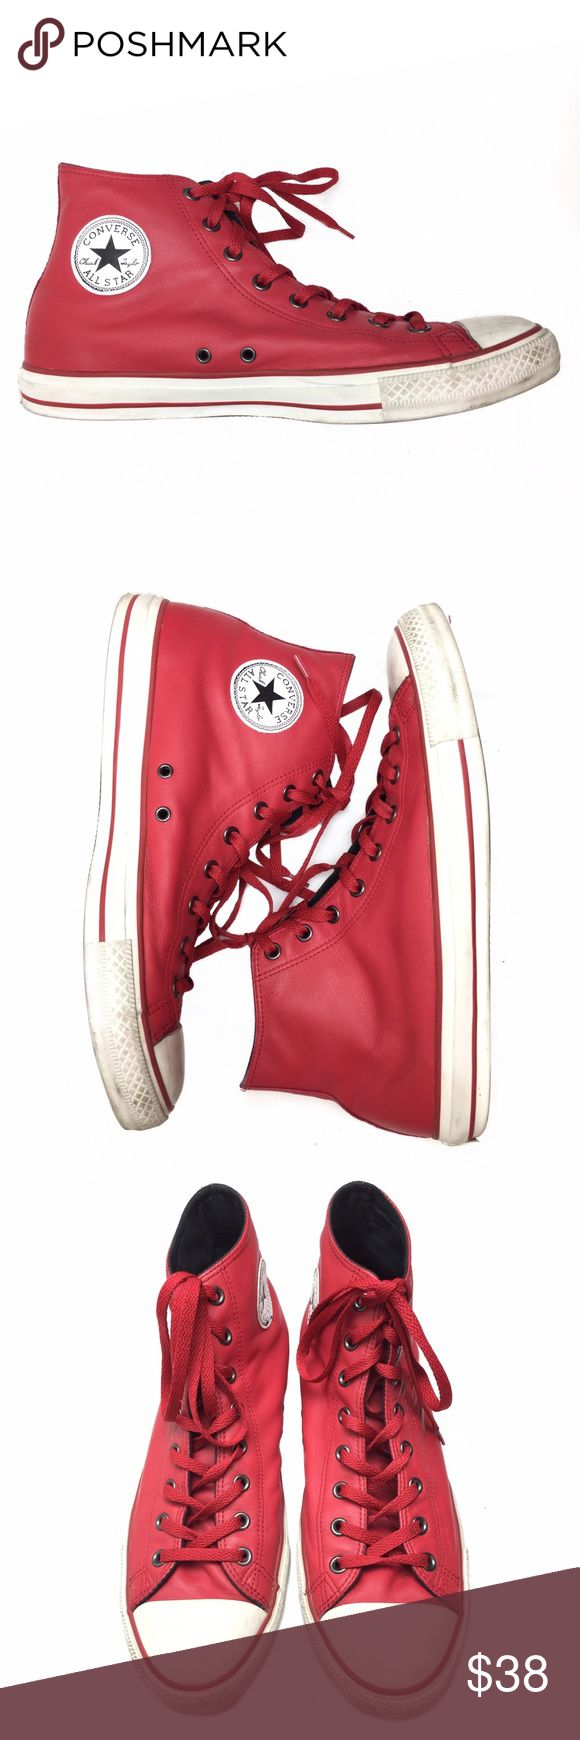 LEATHER CONVERSE HI TOP SNEAKERS!!! LEATHER CONVERSE HI TOP SNEAKERS!!! Awesome vibrant red leather Hi-top sneakers that are in EUC! Converse Shoes Sneakers